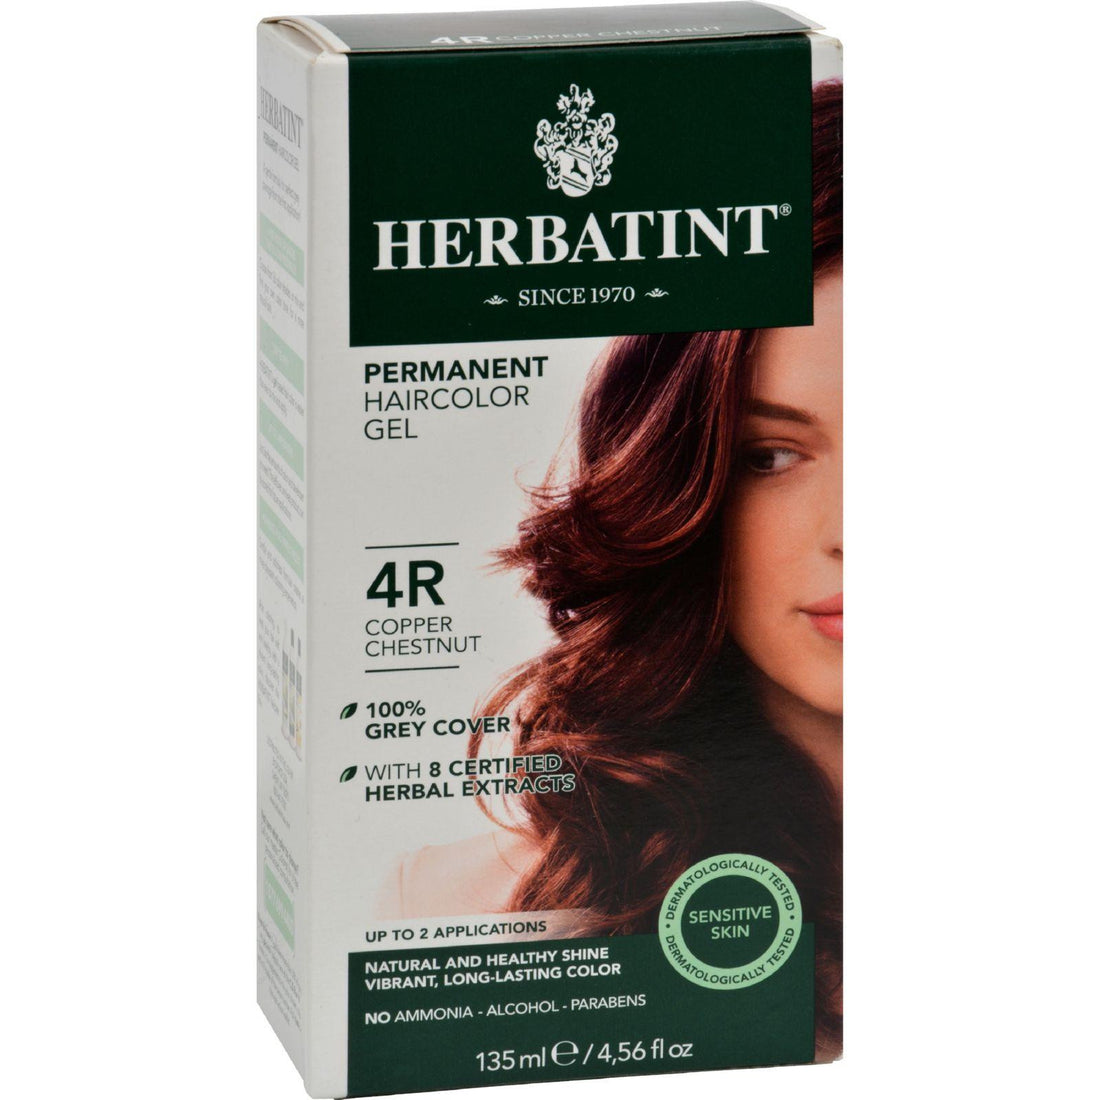 Mother Mantis: Herbatint Permanent Herbal Haircolour Gel 4r Copper Chestnut - 135 Ml Herbatint